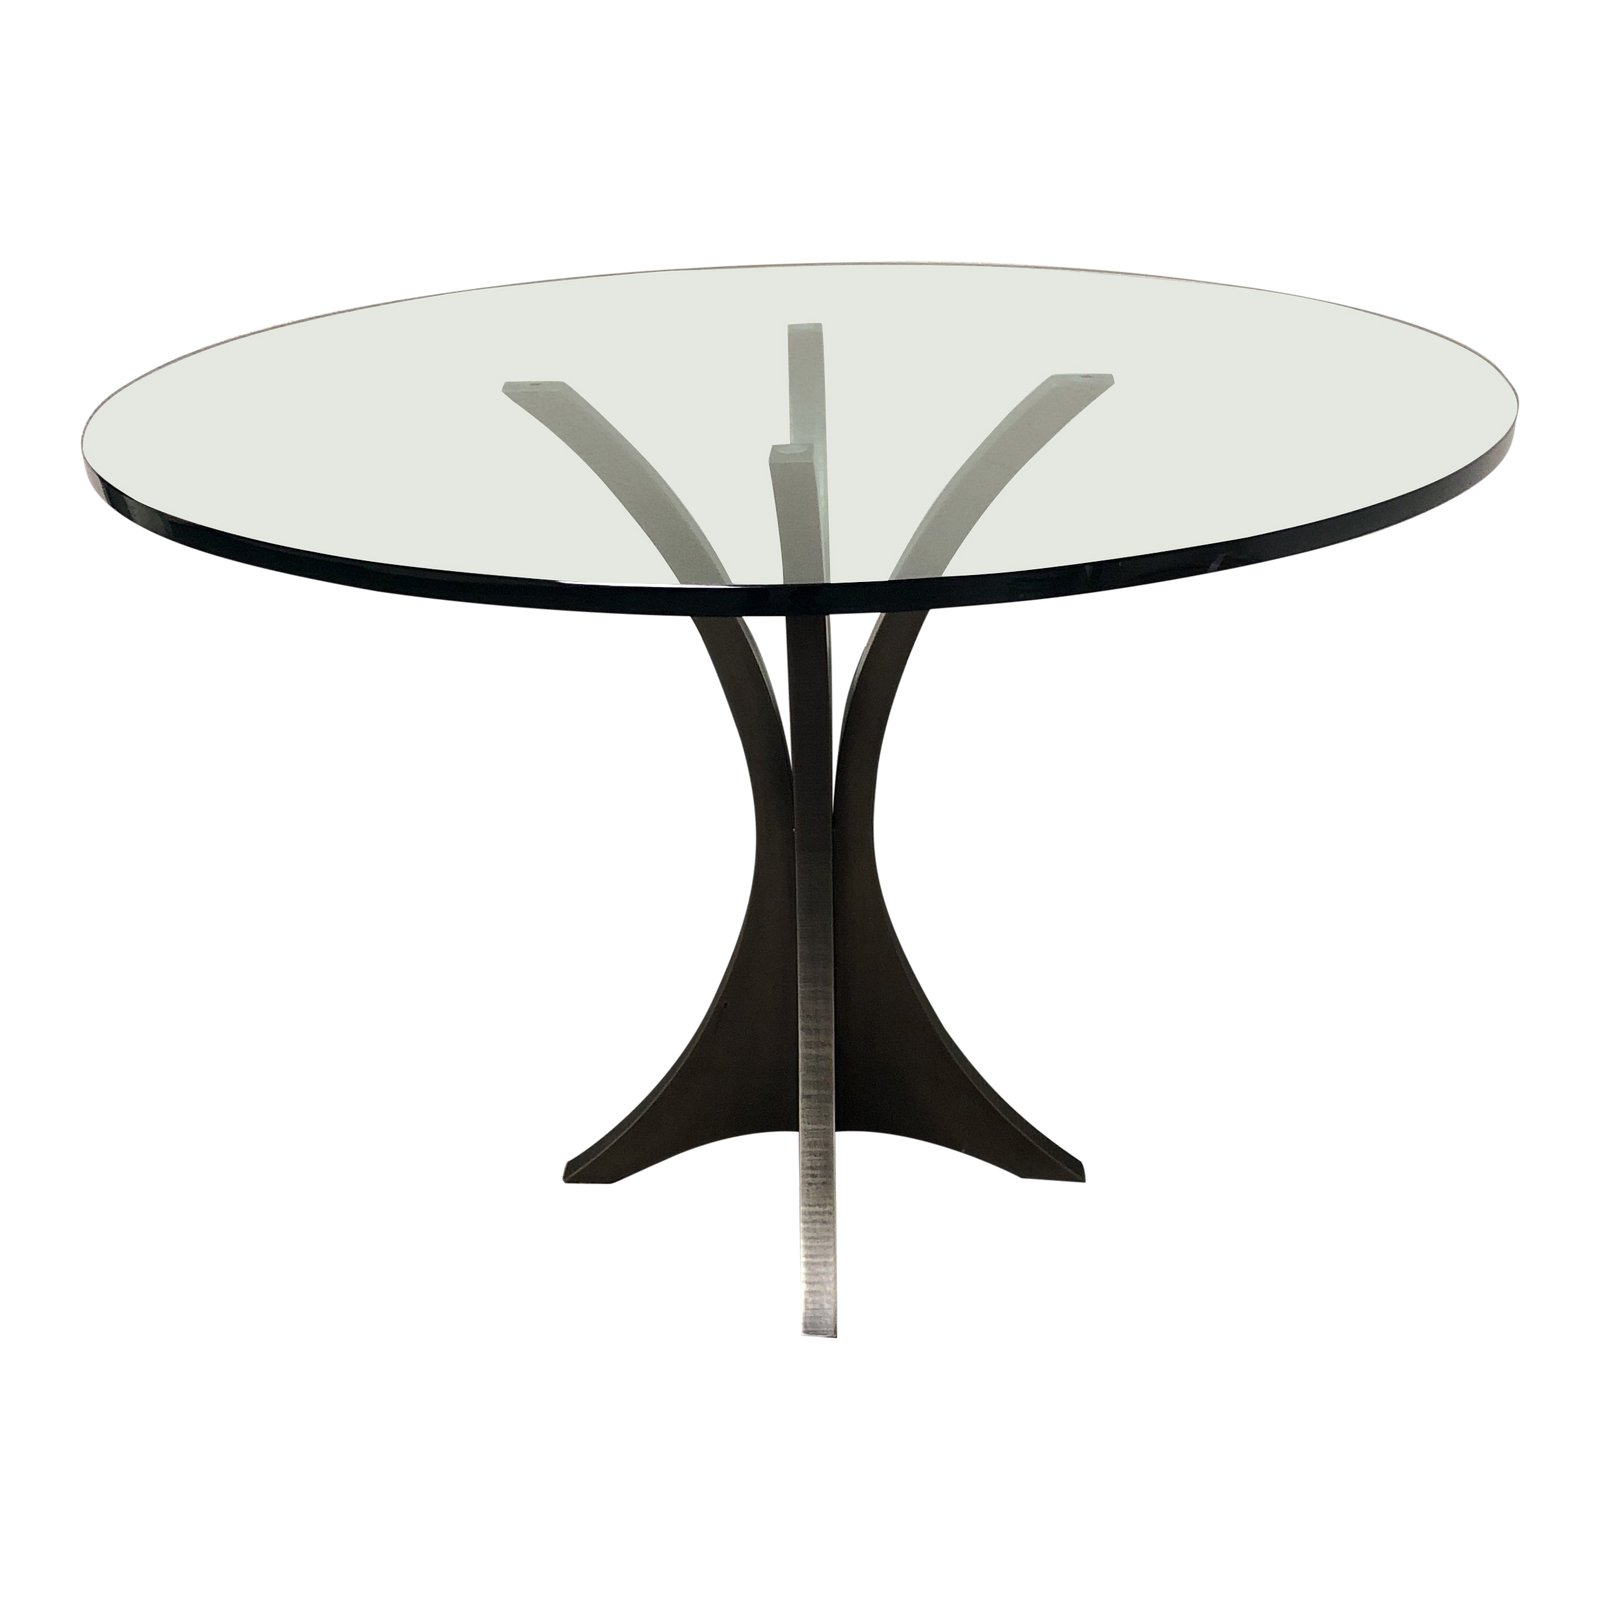 Custom Round Glass Top + Metal Pedestal Base Table